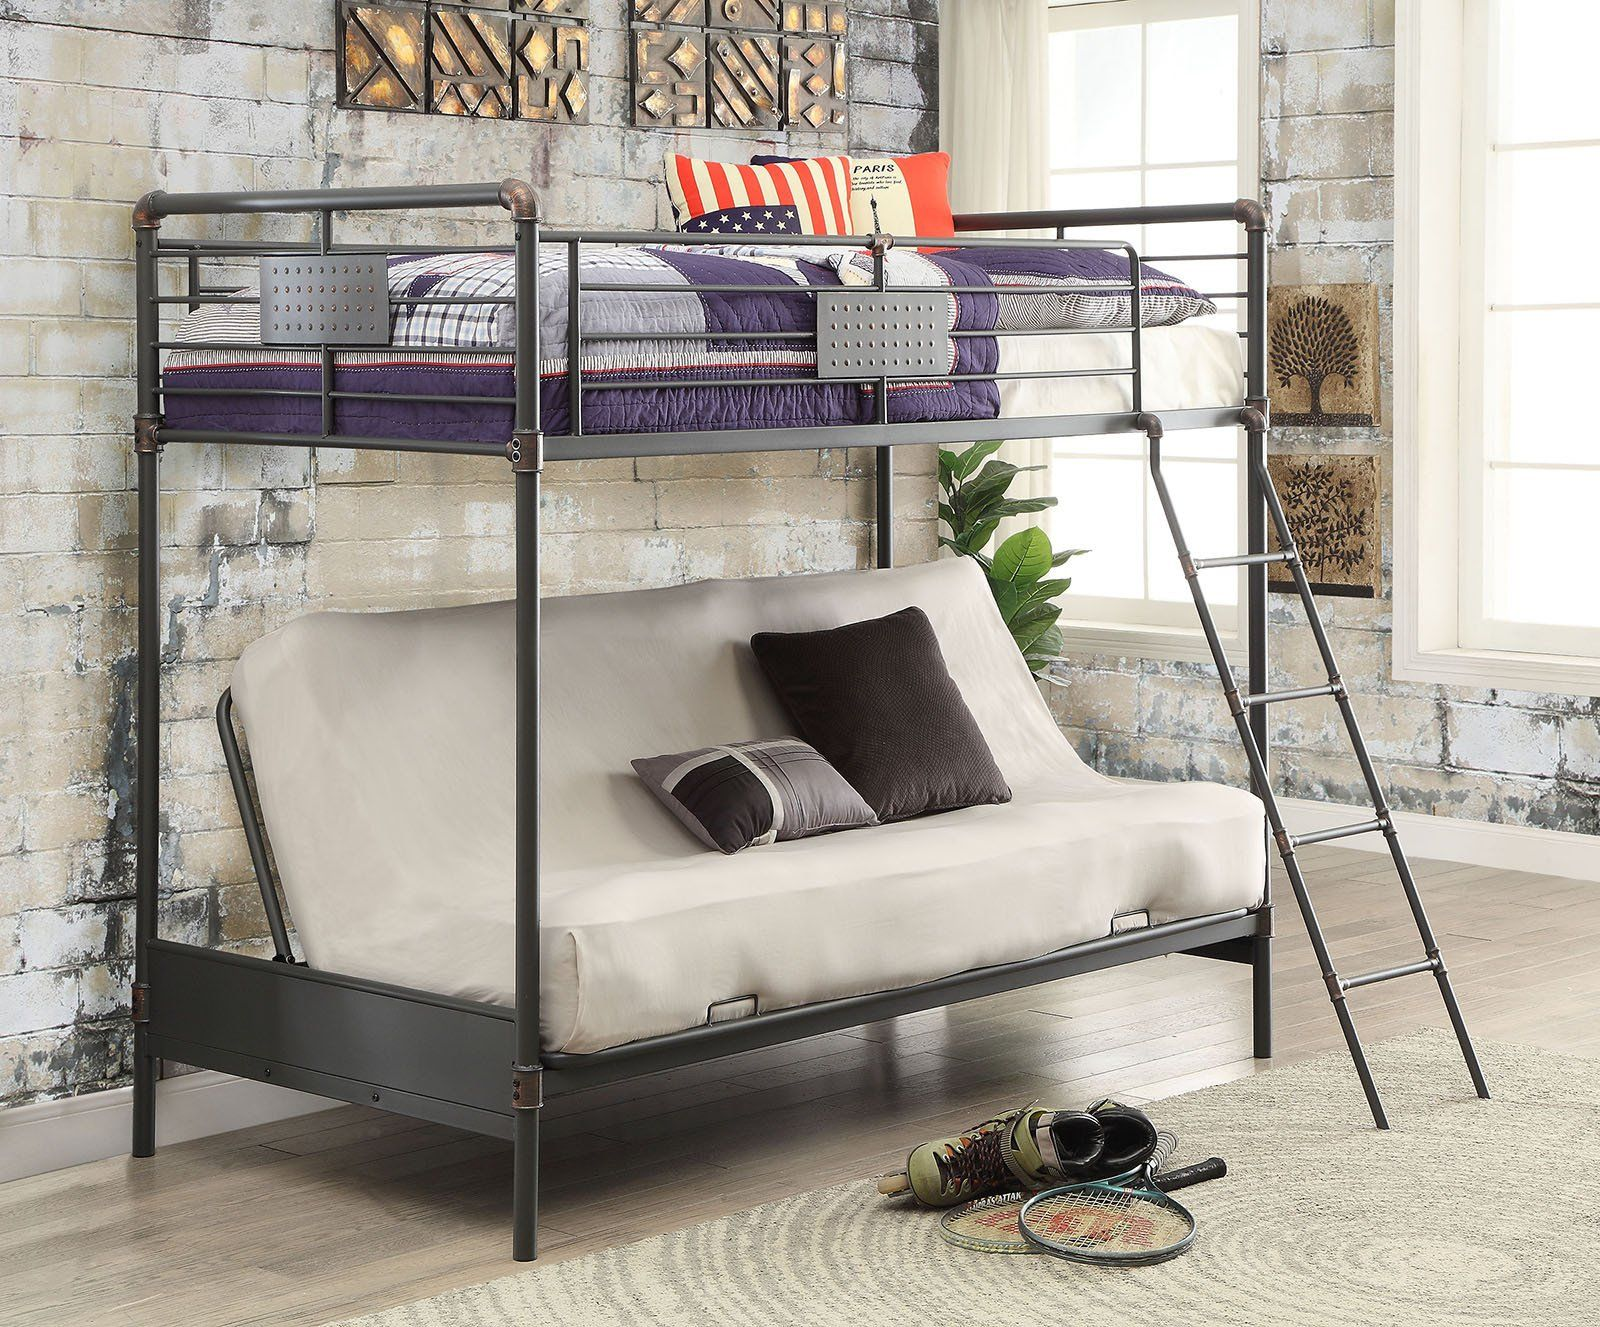 futon arm futons dhp base metal today henley garden product free shipping frame home overstock